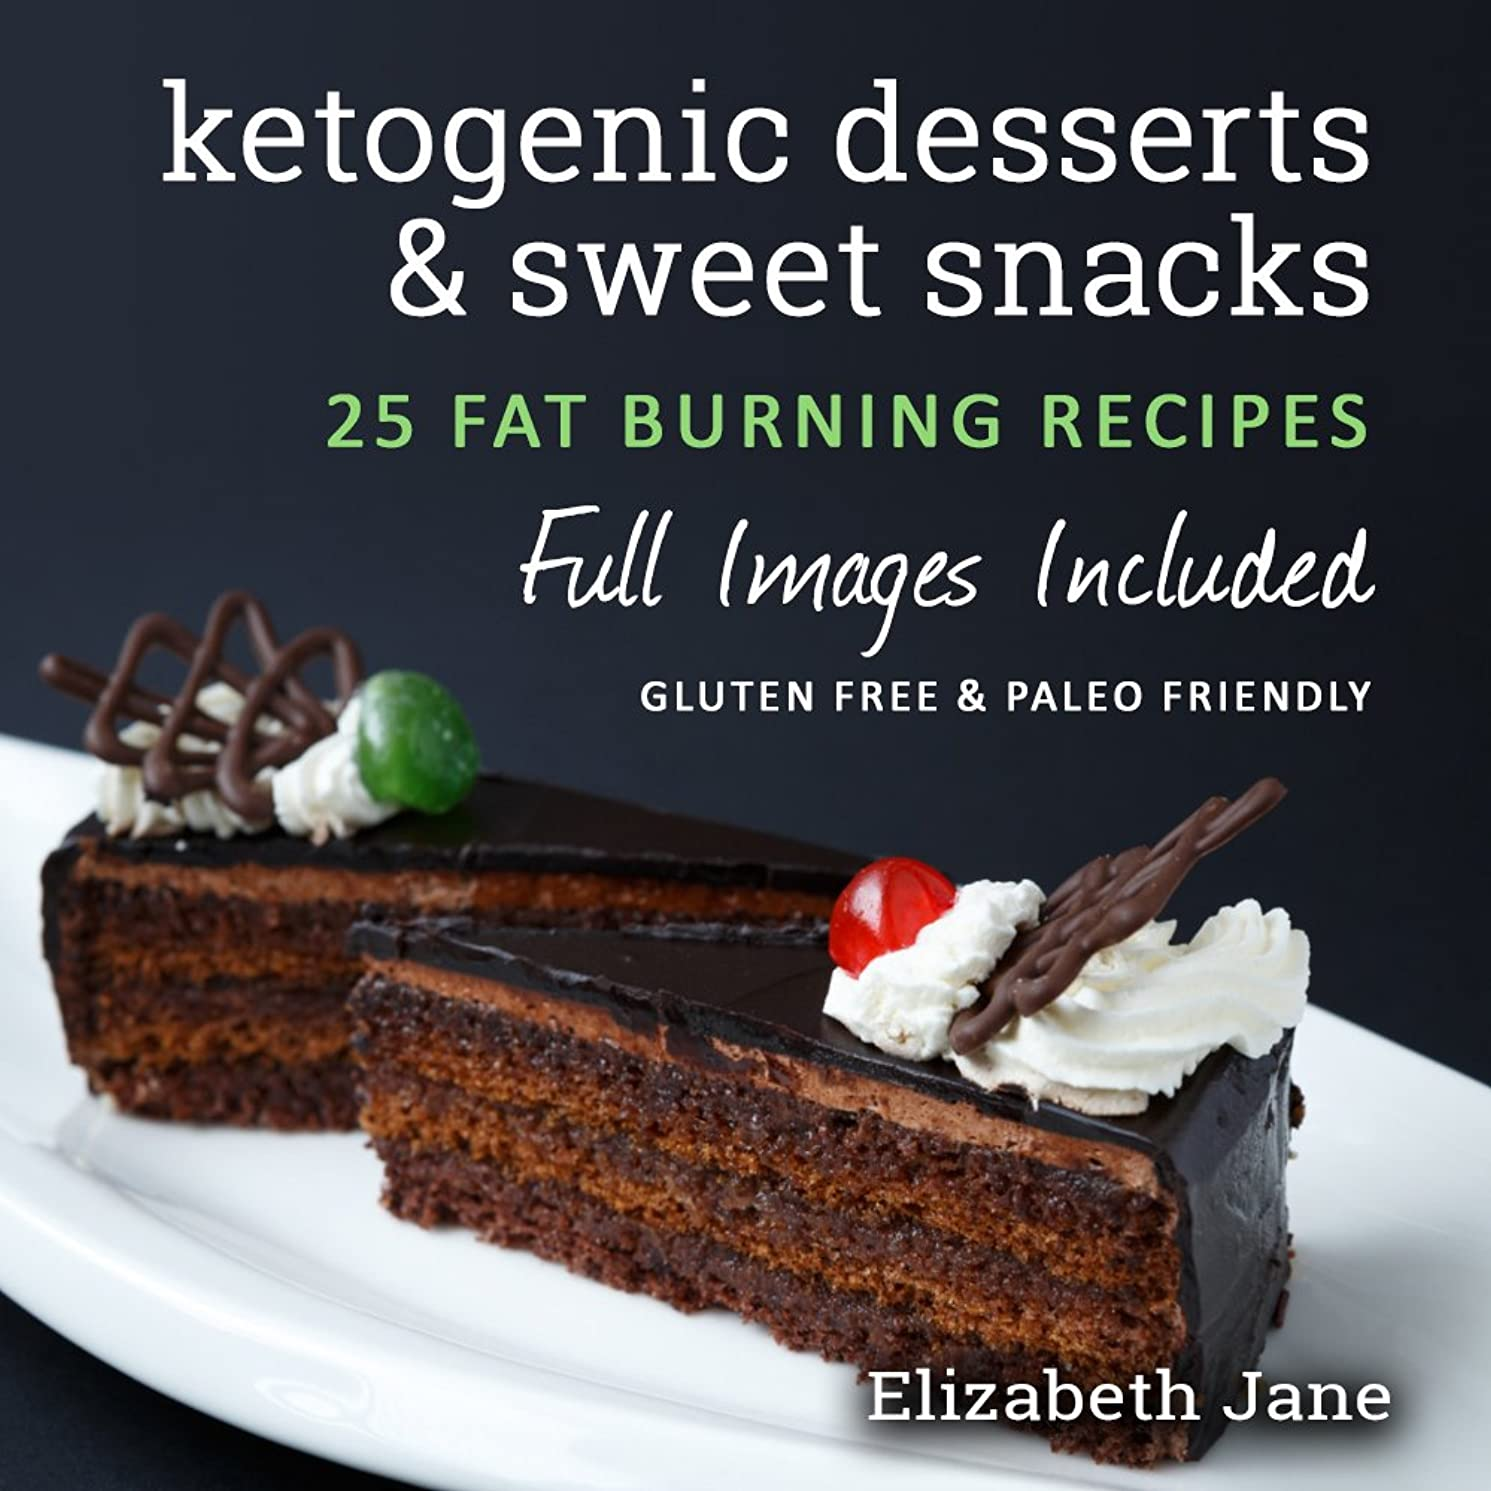 Easy Keto Desserts, Sweet Snacks & Fat Bombs Cookbook: Mouth-watering, fat burning and energy boosting low carb recipes (Elizabeth Jane Cookbook) (English Edition)